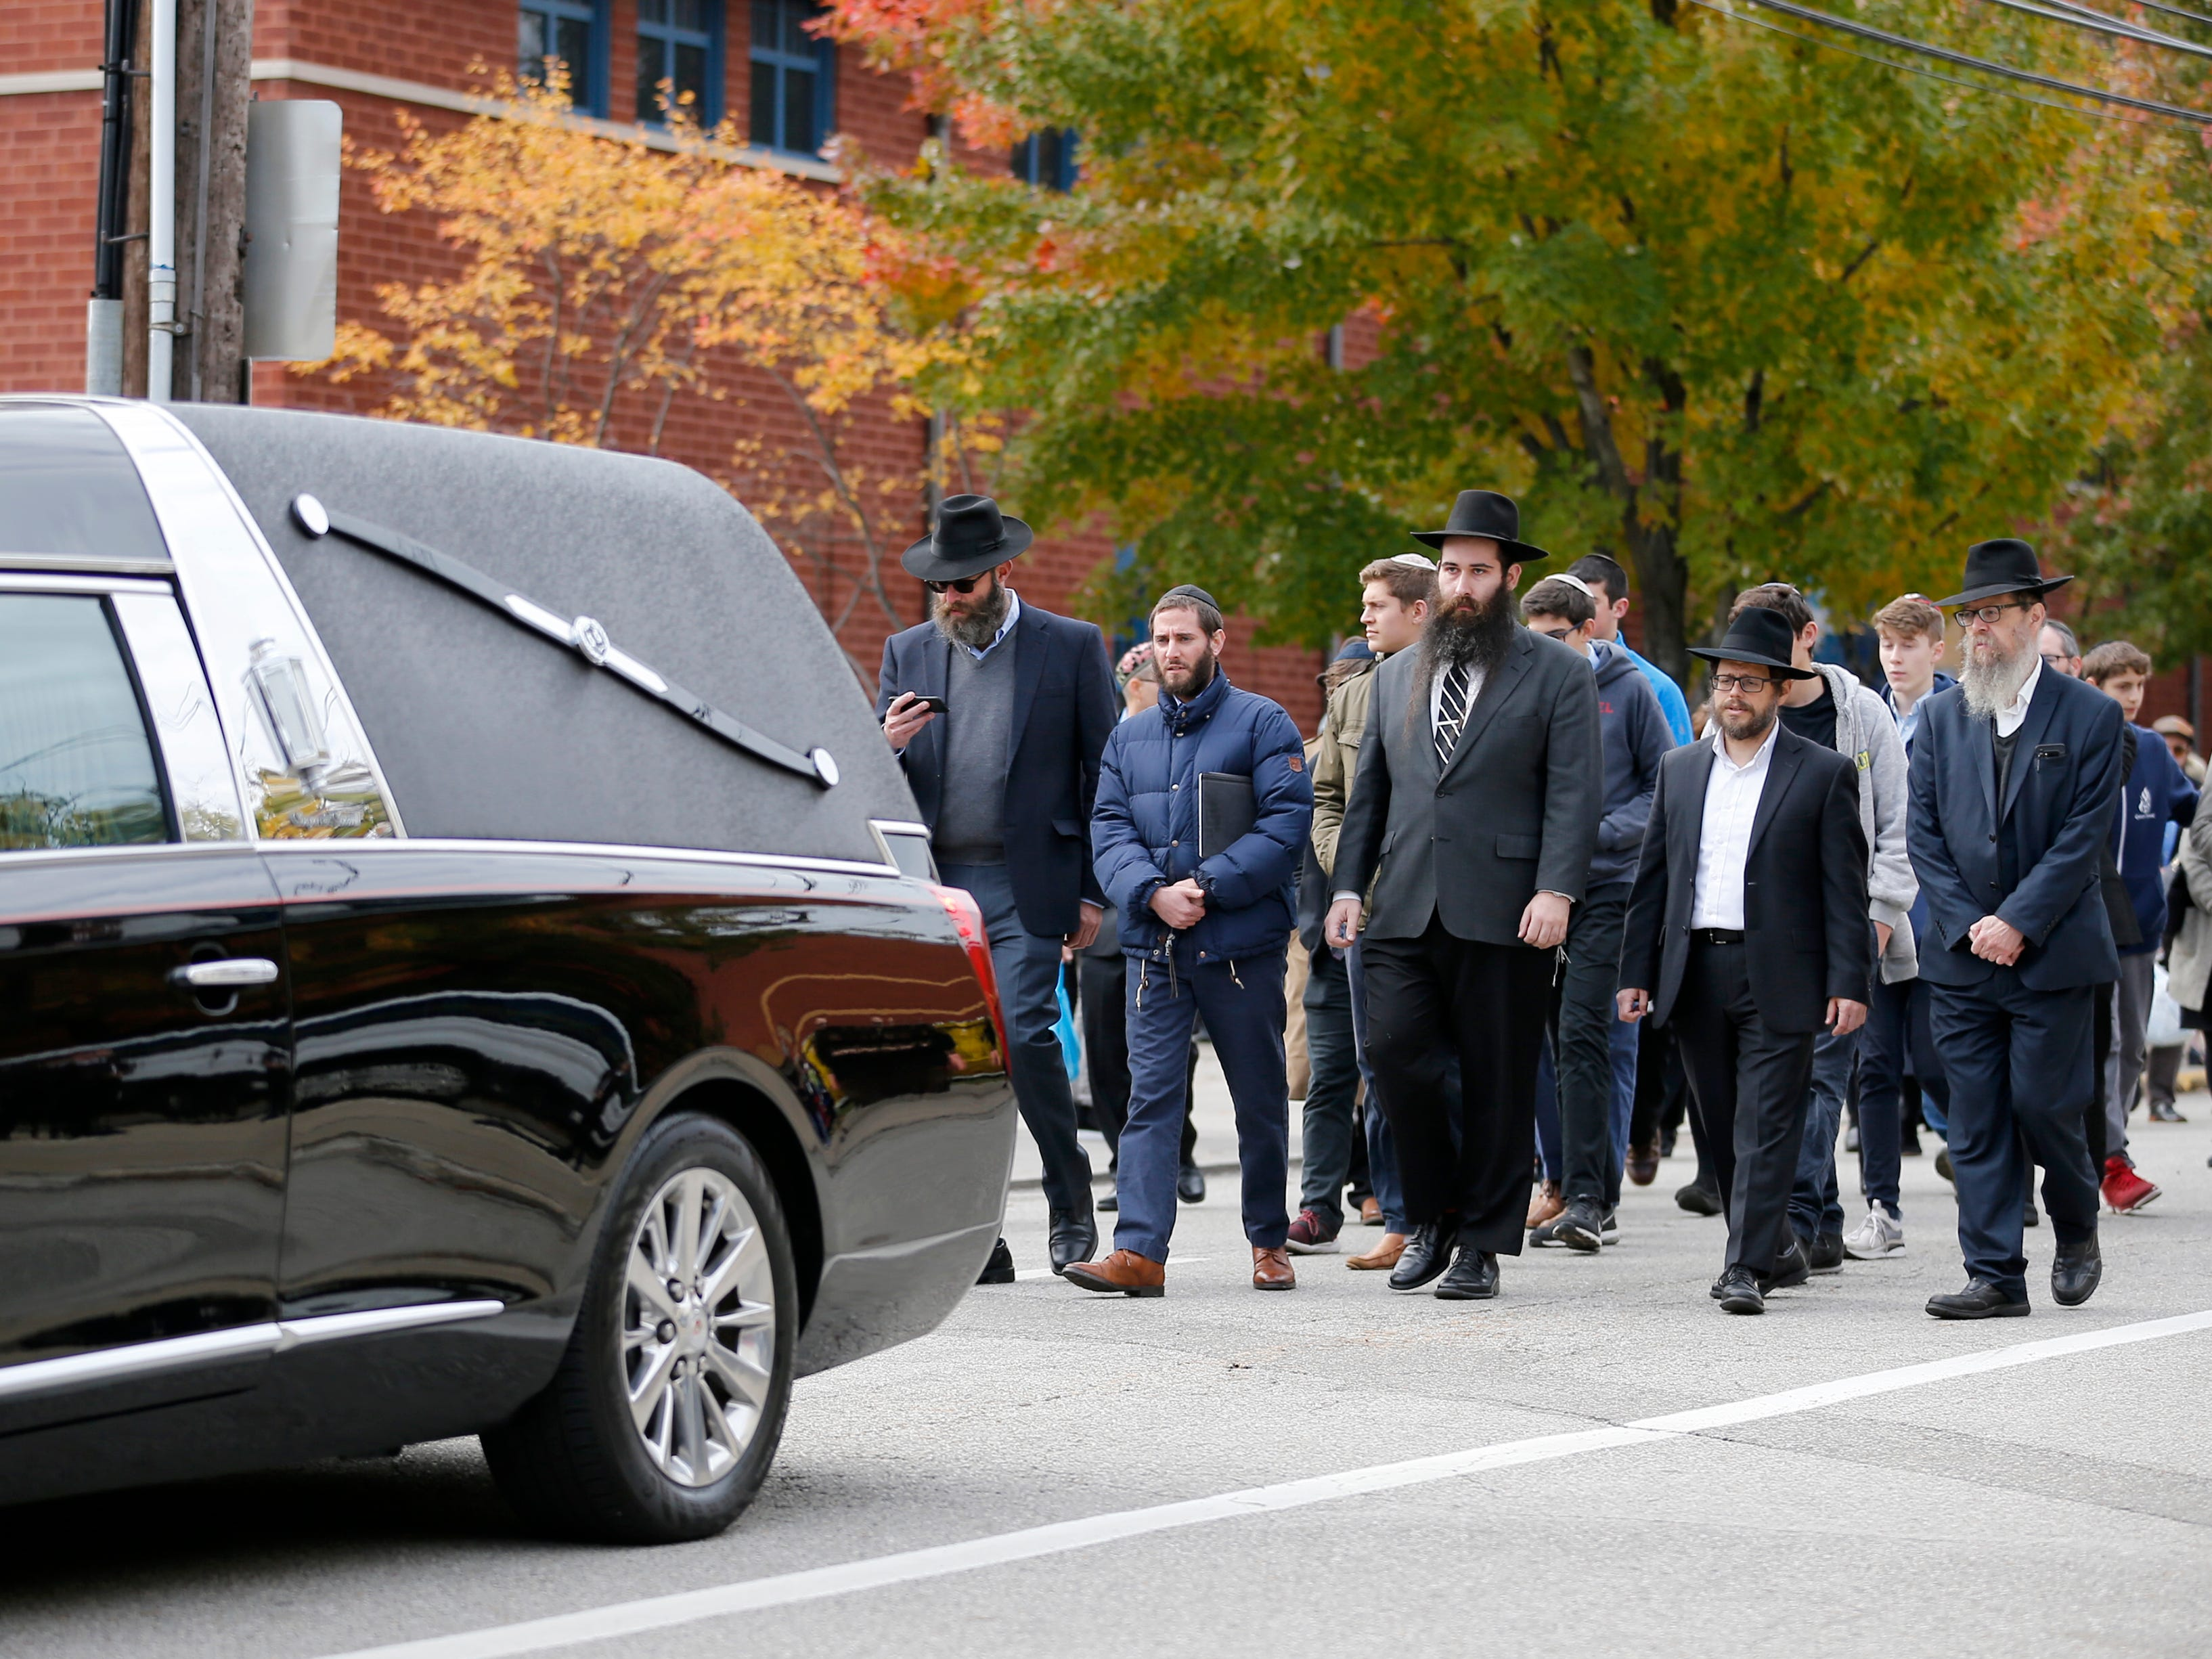 A processional leaves the Jewish Community Center after the funeral of Dr. Jerry Rabinowitz, 66, in the Squirrel Hill neighborhood of Pittsburgh, Oct. 30, 2018. Rabinowitz and 10 other people were shot and killed Oct. 27, 2018 during a service at Tree of Life Congregation Synagogue in Pittsburgh.   Robert Bowers allegedly screamed anti-Semitic epithets, as he opened fire on the congregants, law enforcement officials said. Eleven worshippers were killed and six other people were wounded.